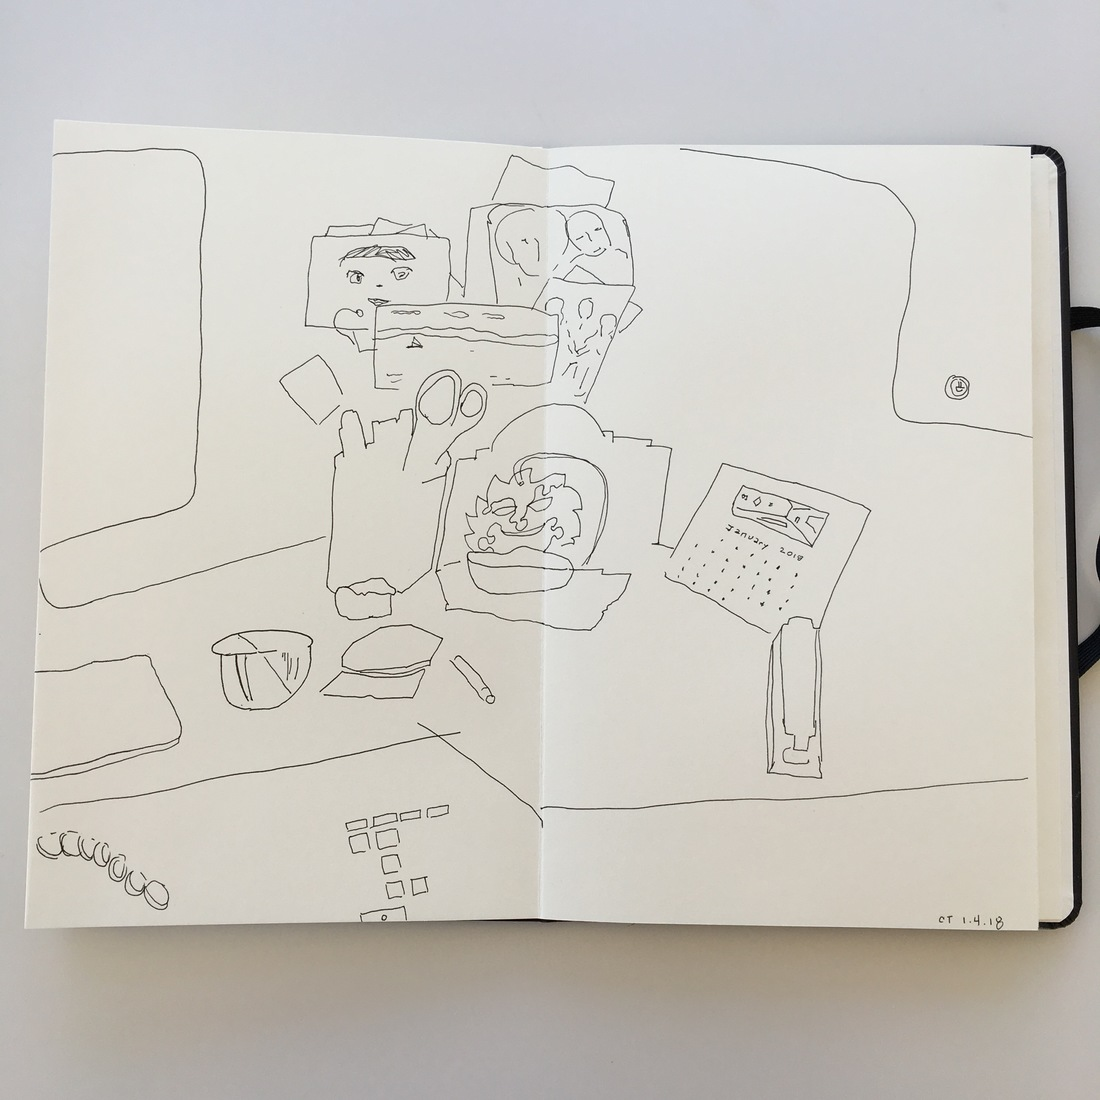 Drawings—Here, There, and Everywhere (a slideshow)